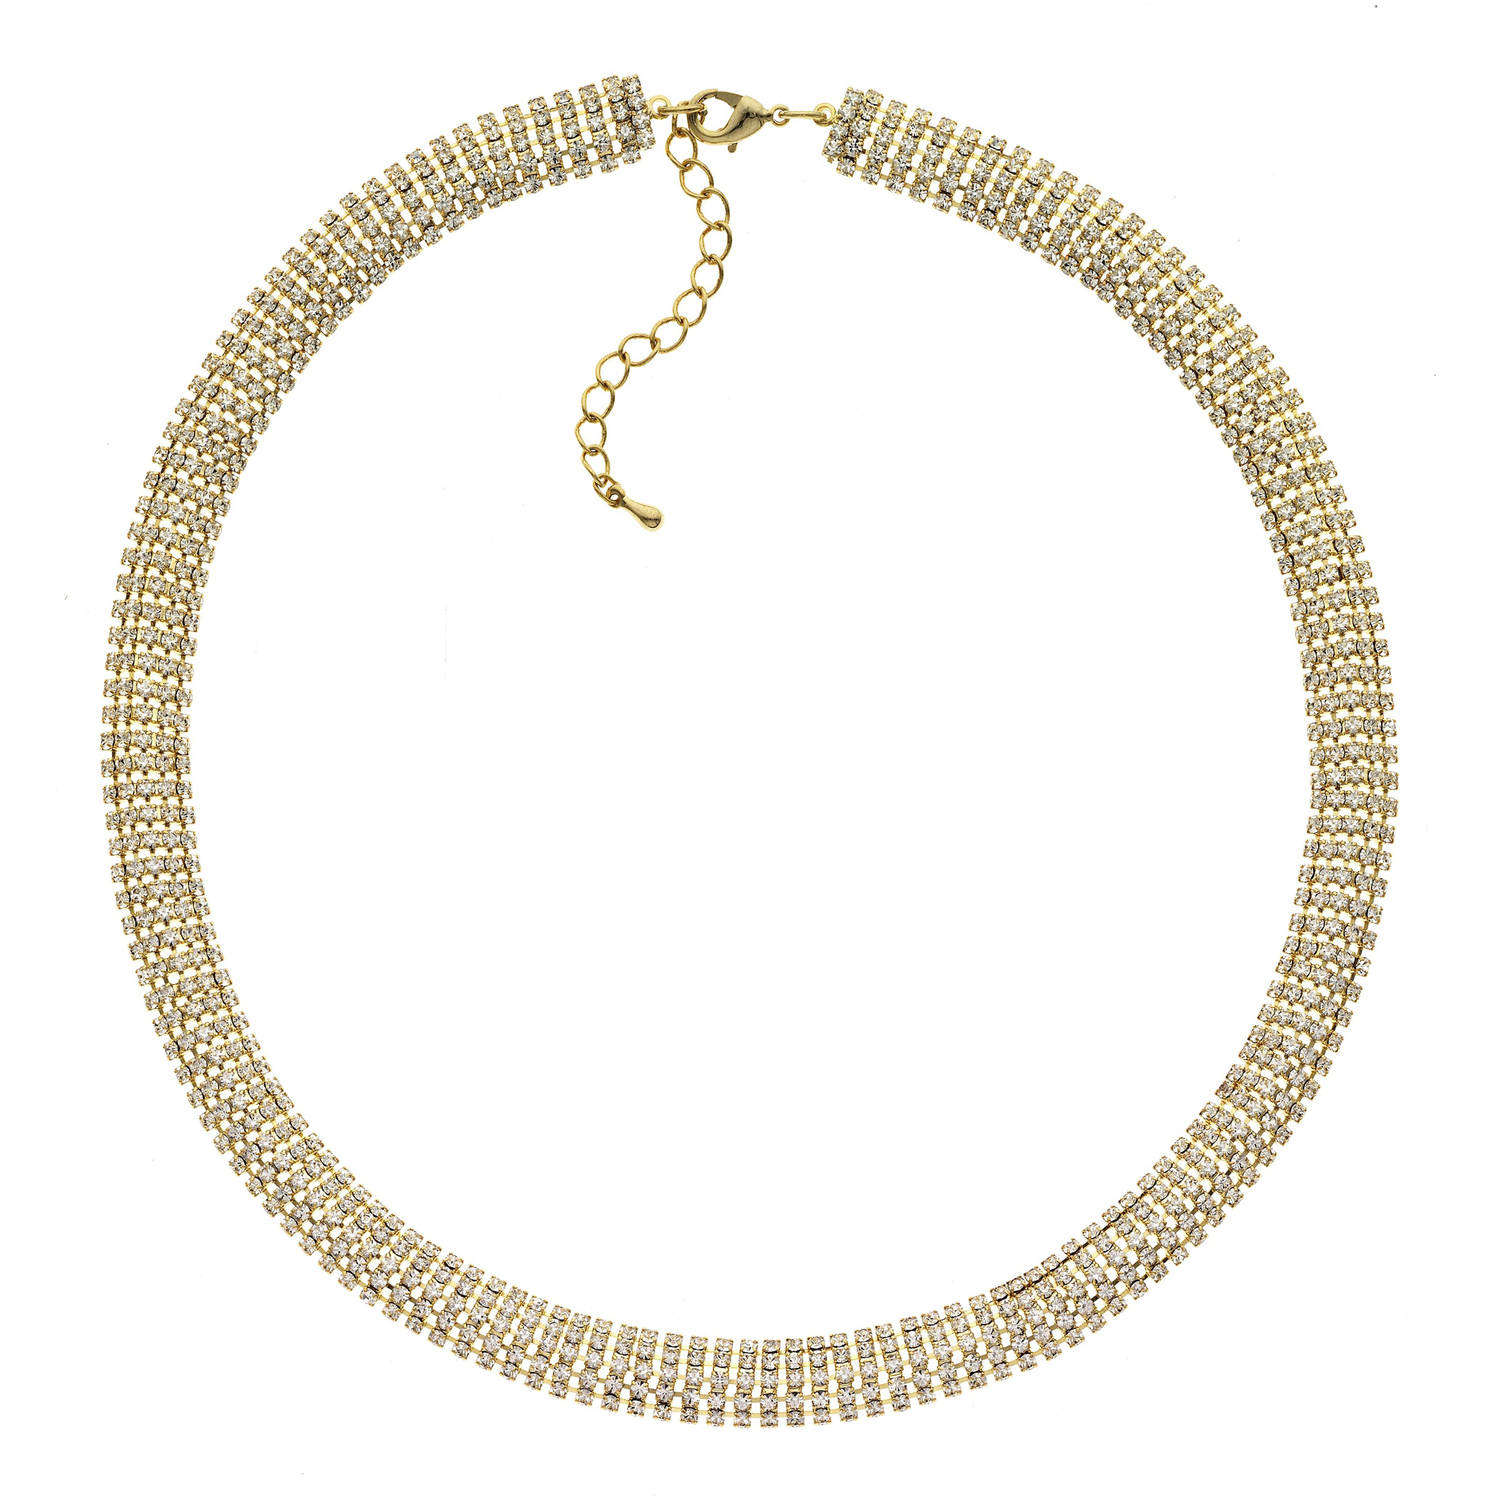 X & O Handset Austrian Crystal 14kt Gold-Plated 10mm Snake Chain Necklace